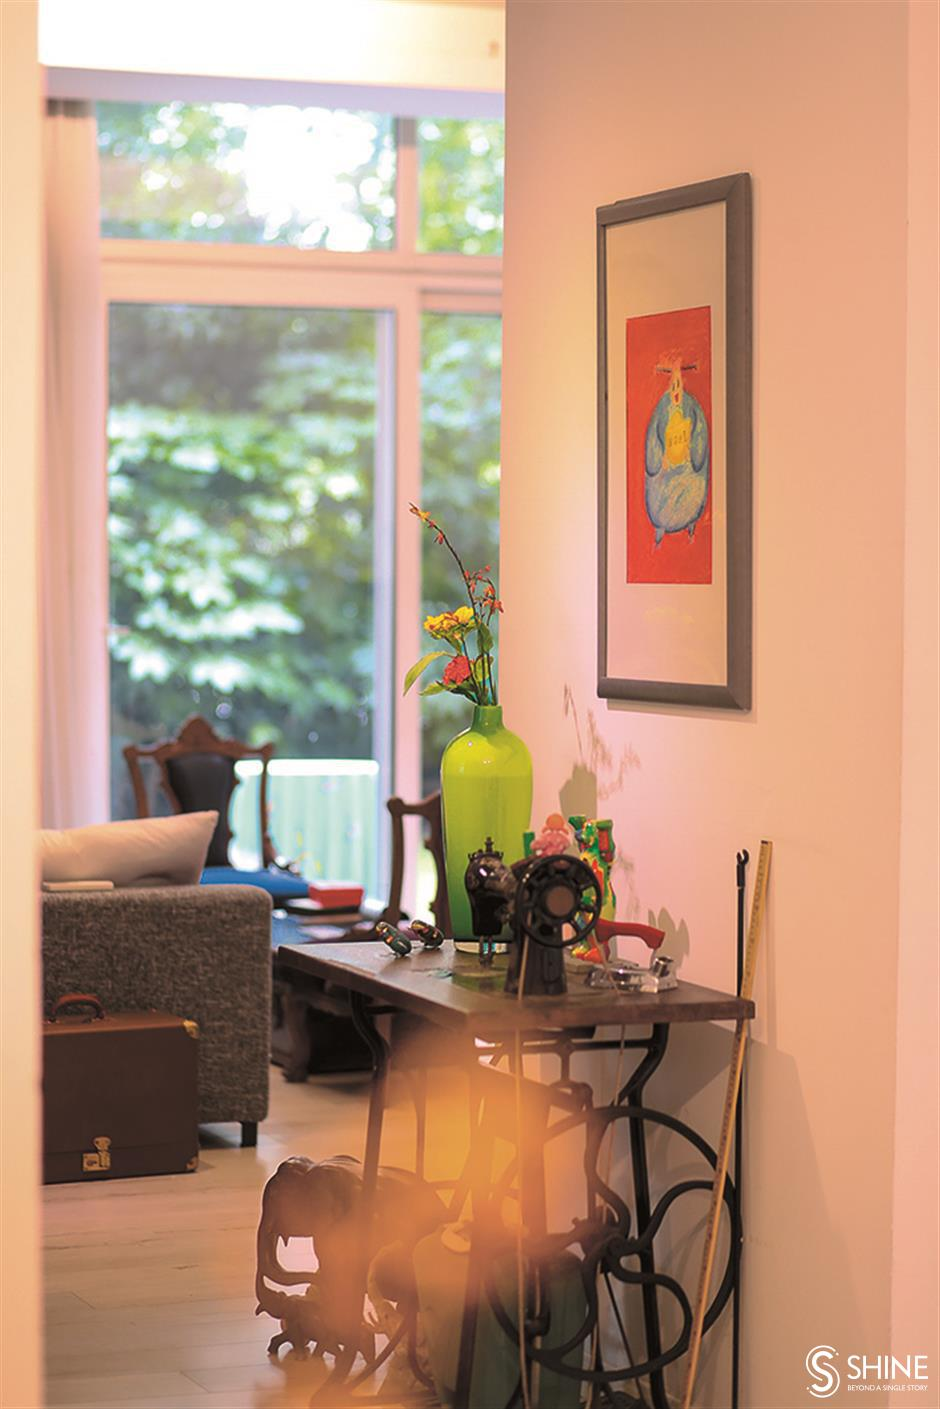 A colorful personality transforms the apartment into a